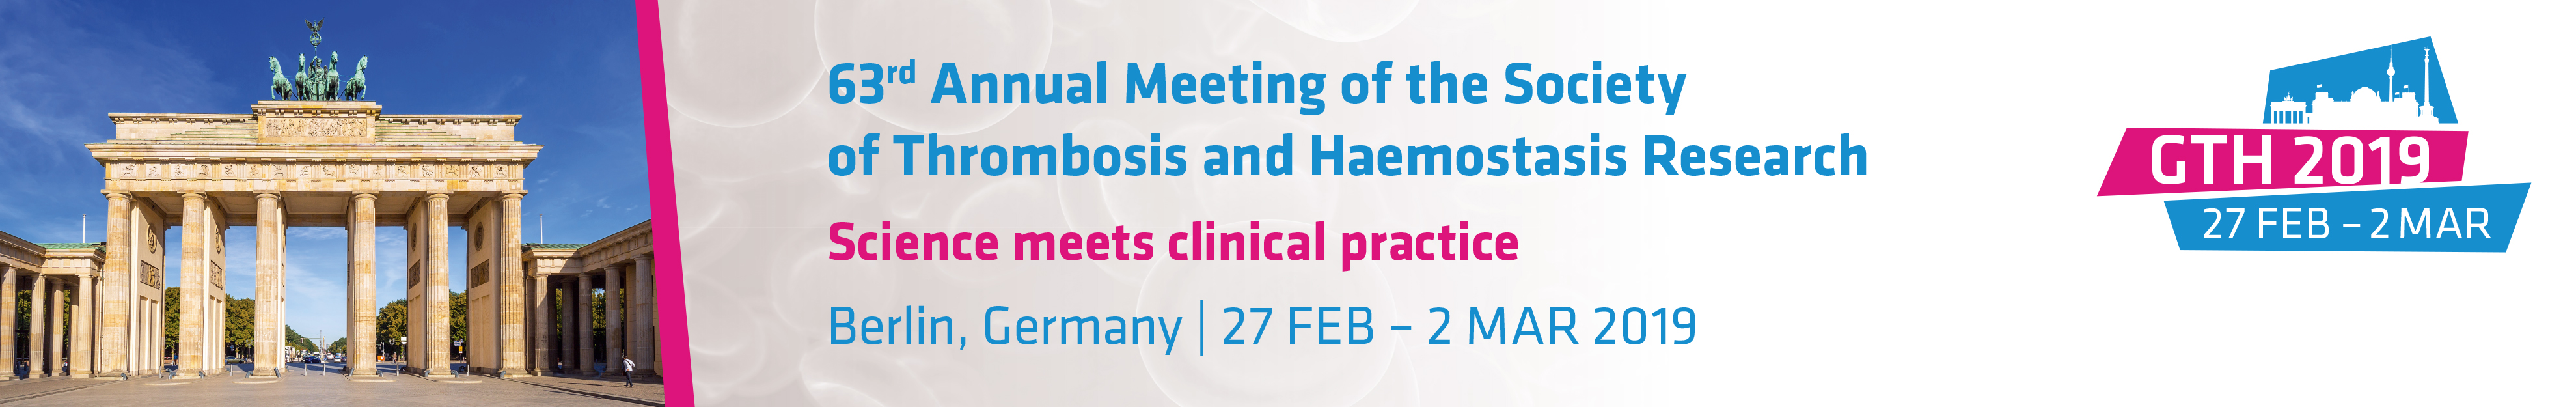 63rd Annual Meeting of the Society of Thrombosis and Haemostasis Research